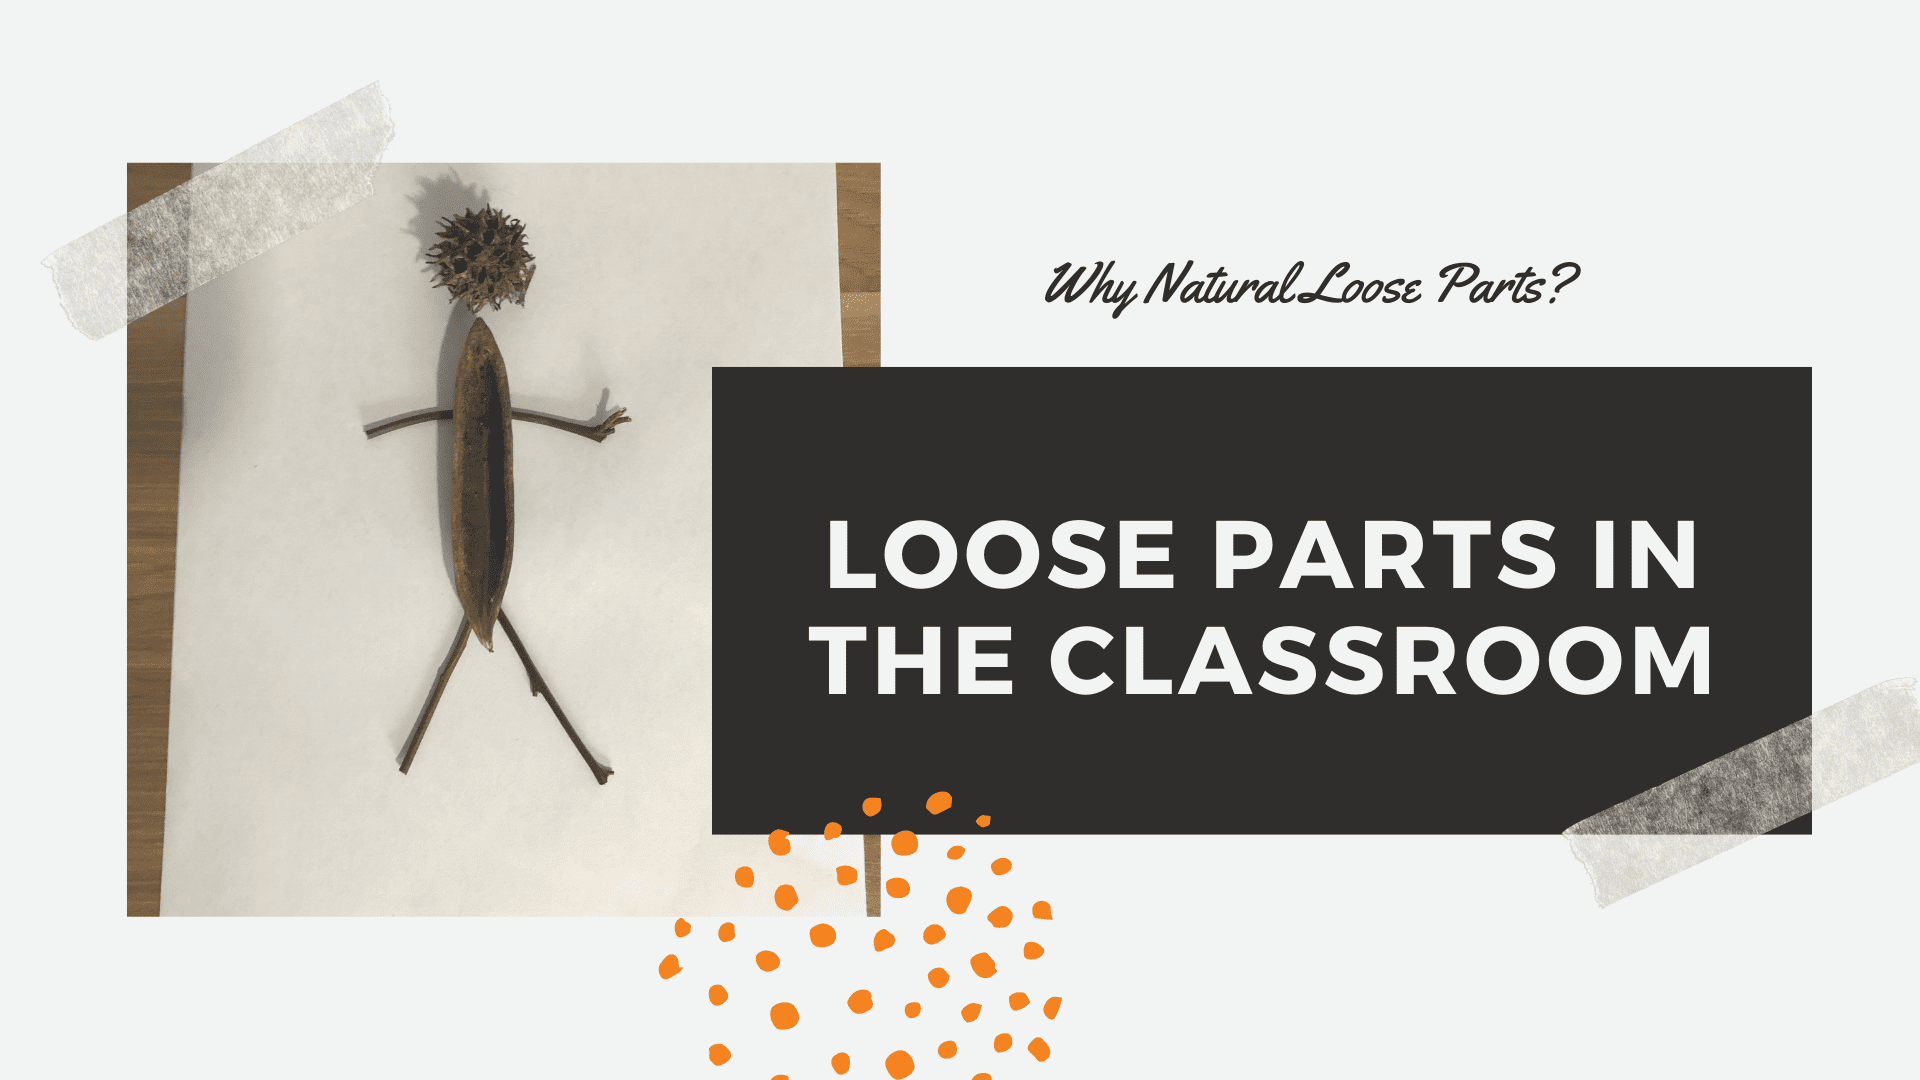 Loose parts in the classroom